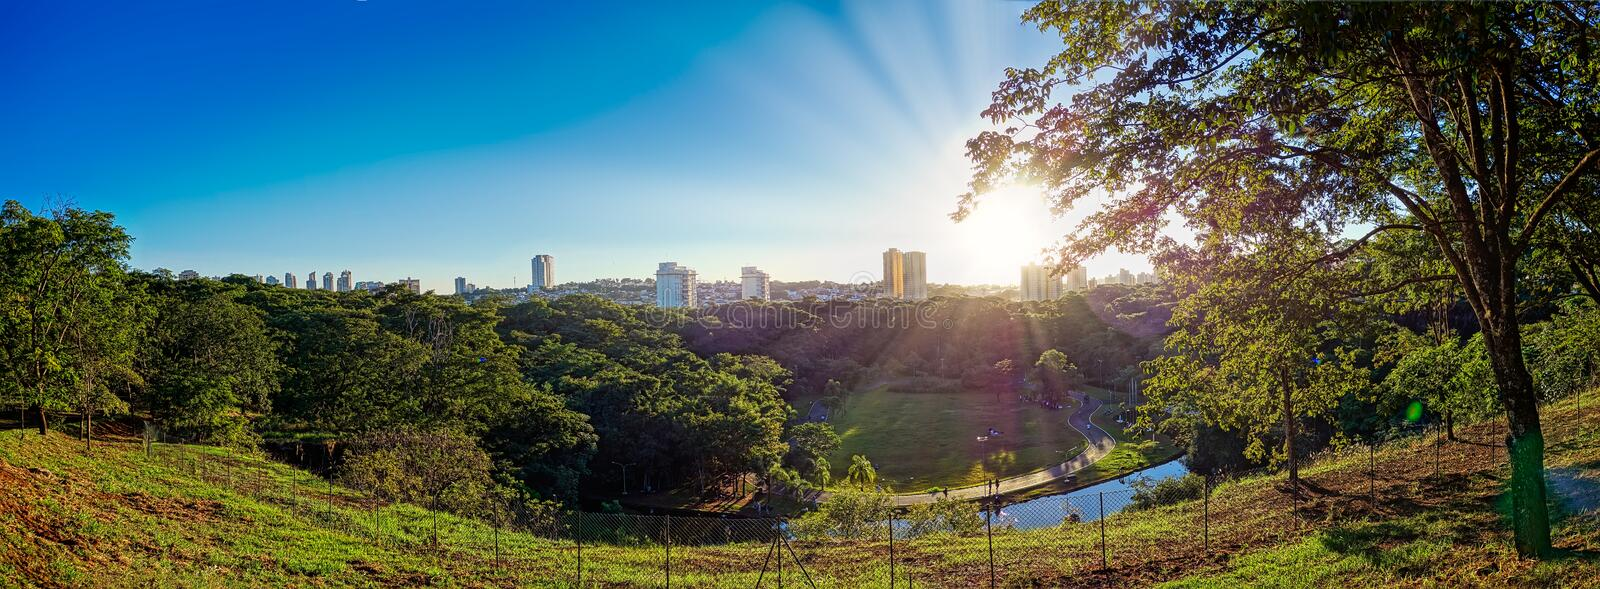 Municipal park of Ribeirao Preto - Sao Paulo, Brazil, panoramic view of the city of Ribeirao Preto from the municipal park. Curupira at dusk with blue sky royalty free stock image